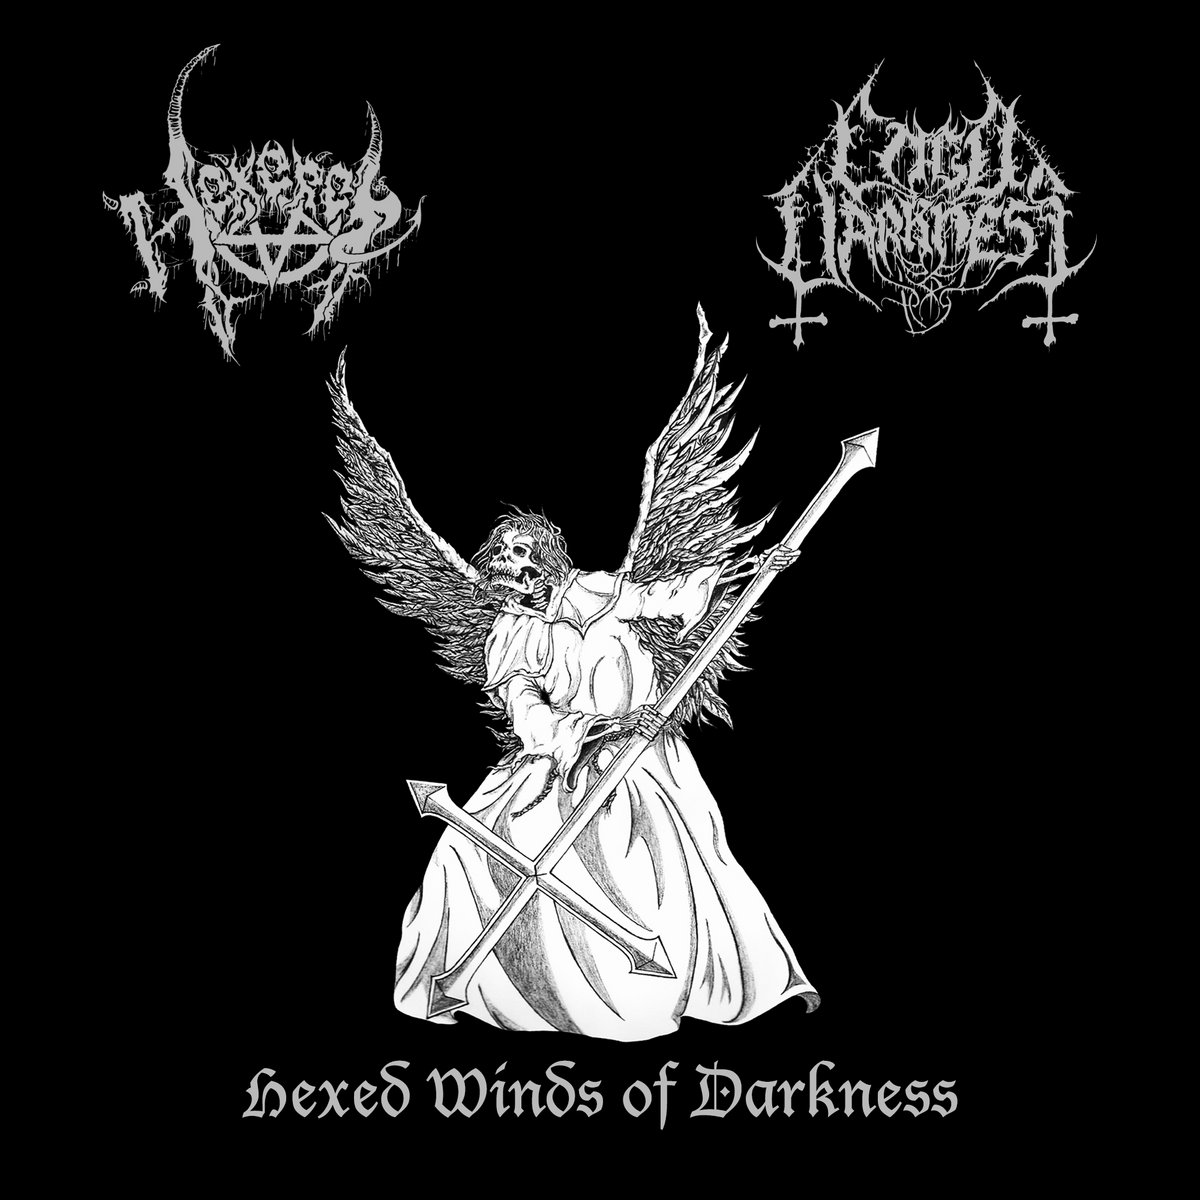 Hexerei / Cold Darkness - Hexed Winds of Darkness (2020) Split